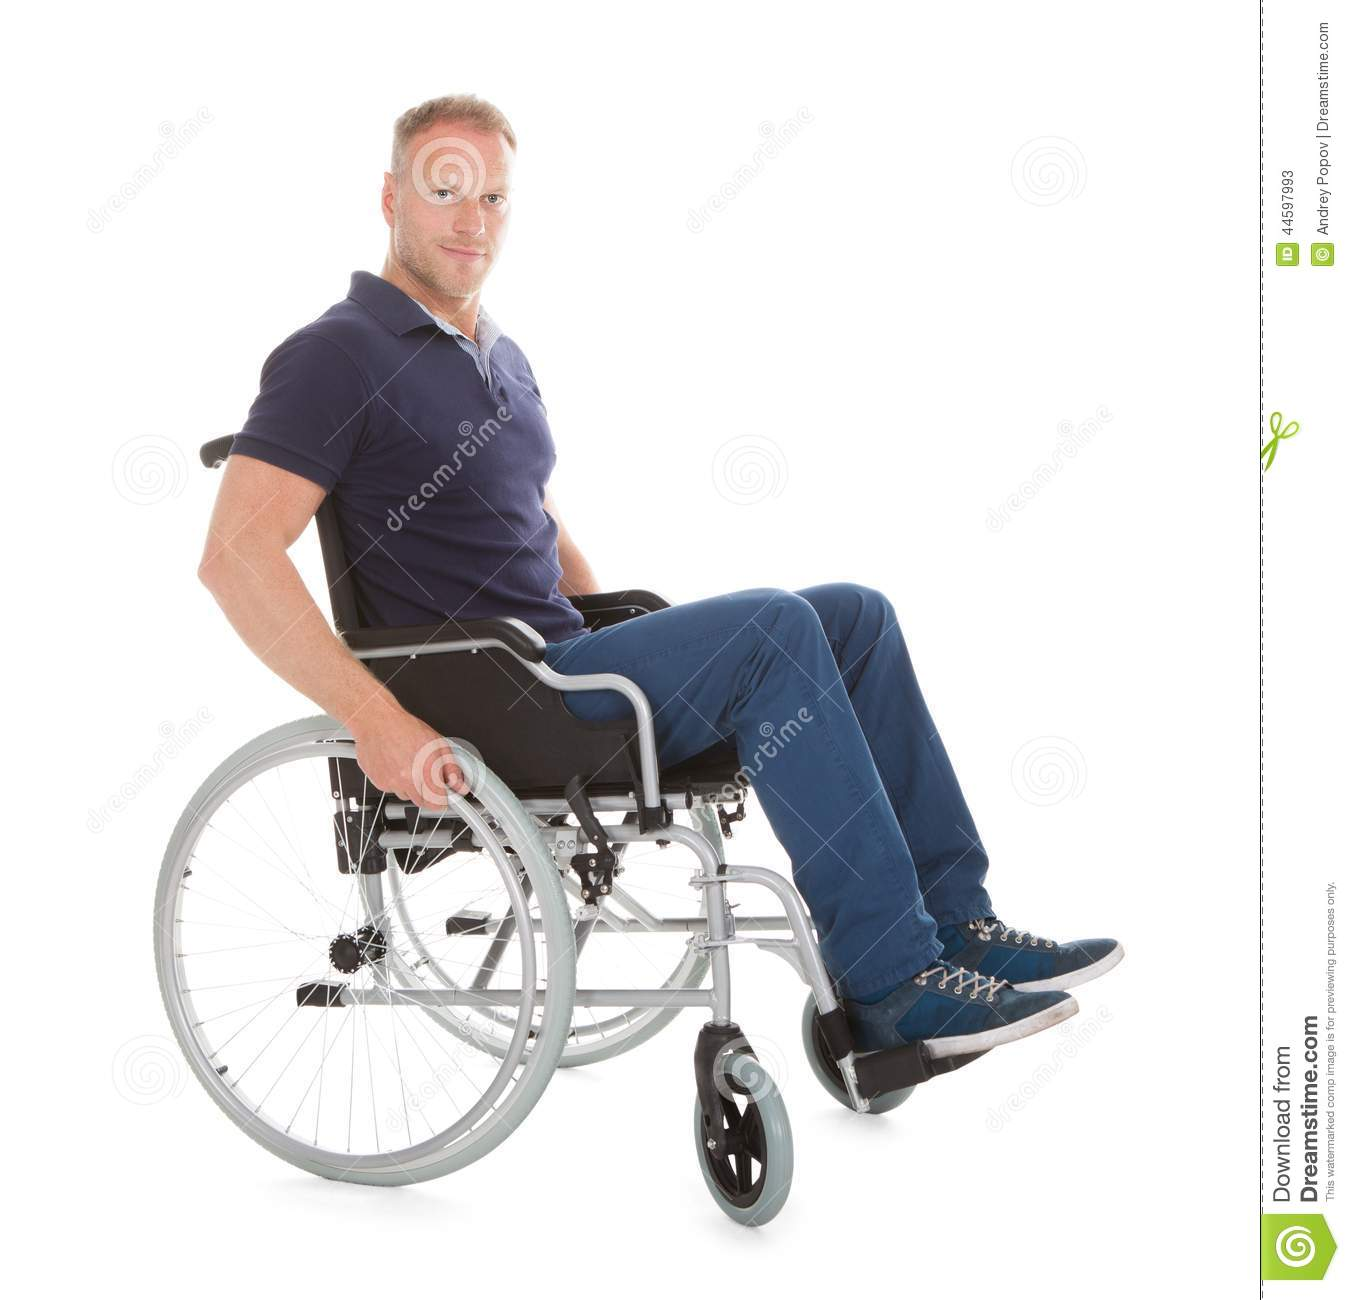 wheelchair man rocking chairs with ottoman portrait of disabled on stock image cutout full length over white background